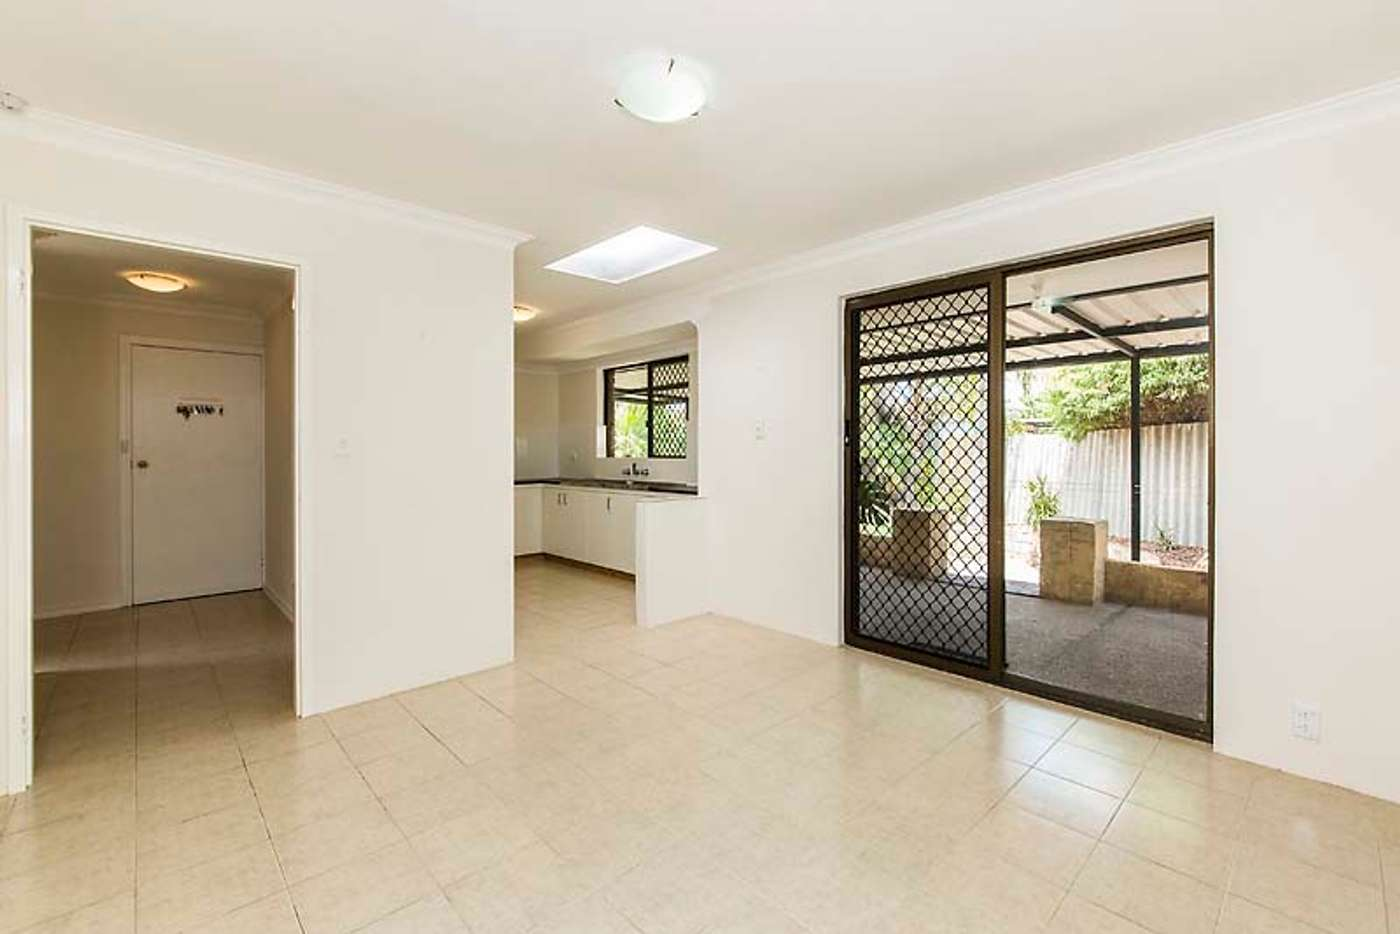 Sixth view of Homely house listing, 9 May Road, Eden Hill WA 6054